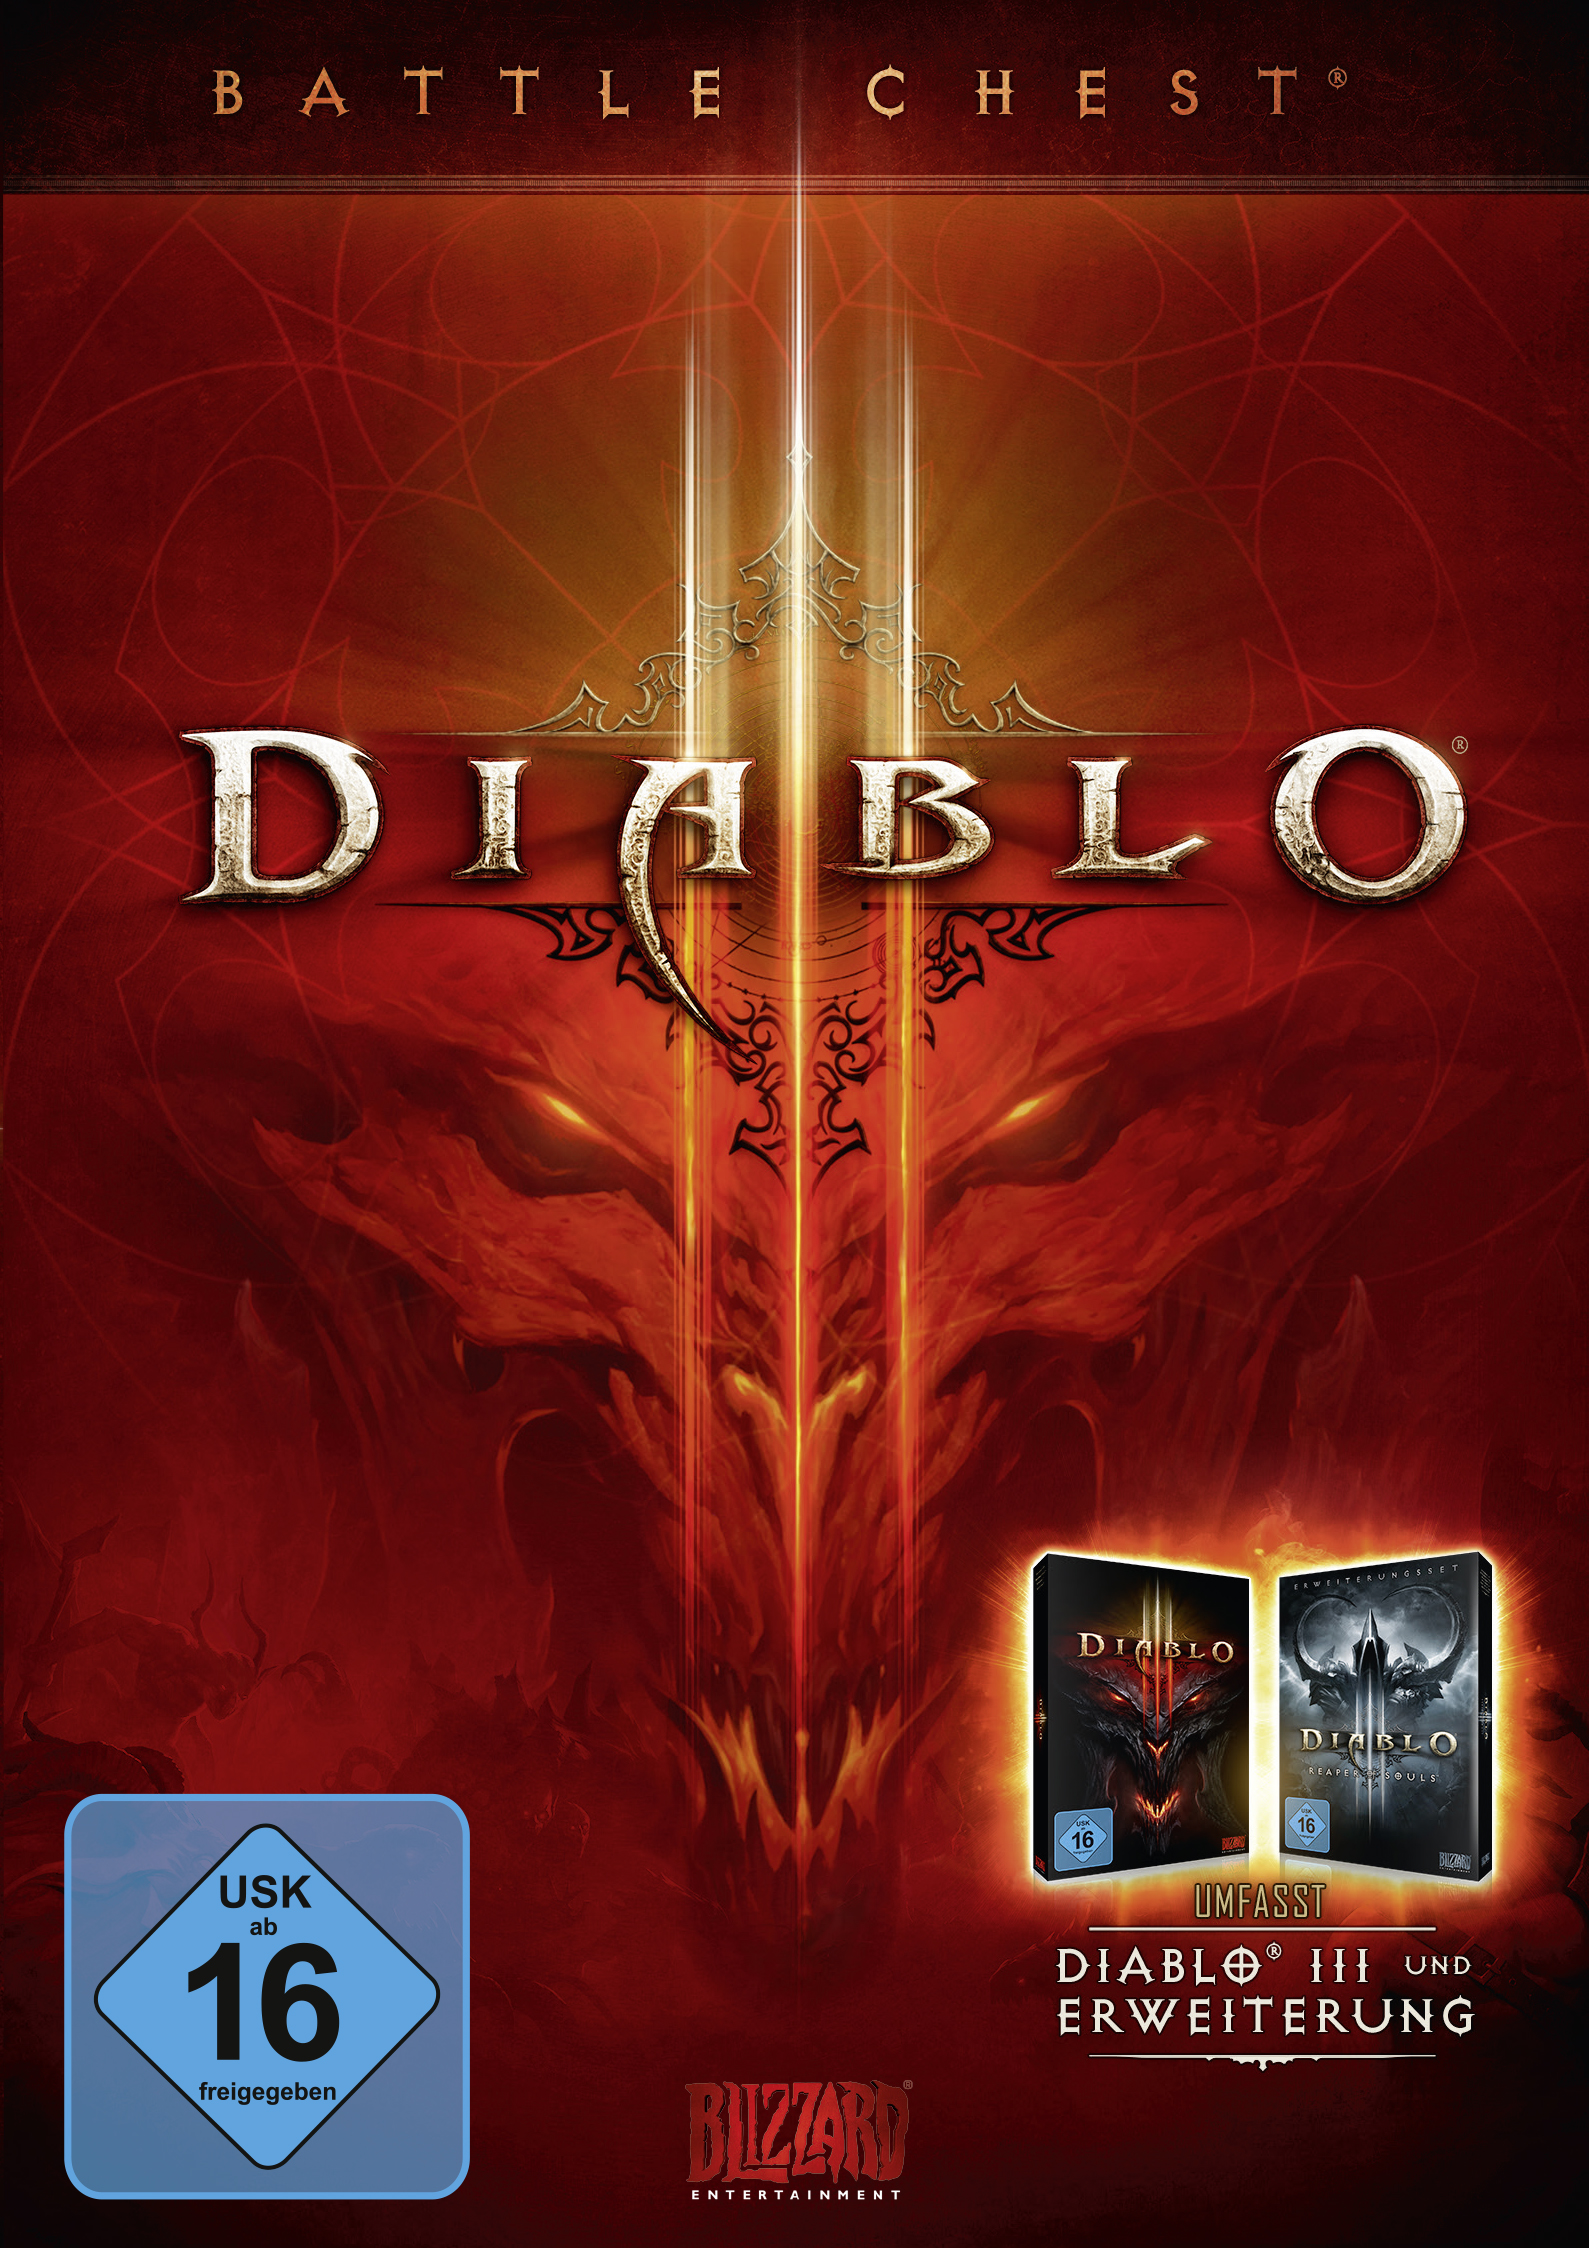 Diablo III: Battle Chest [PC Code - Battle.net] [PC/Mac Code] - Pc Diablo Game